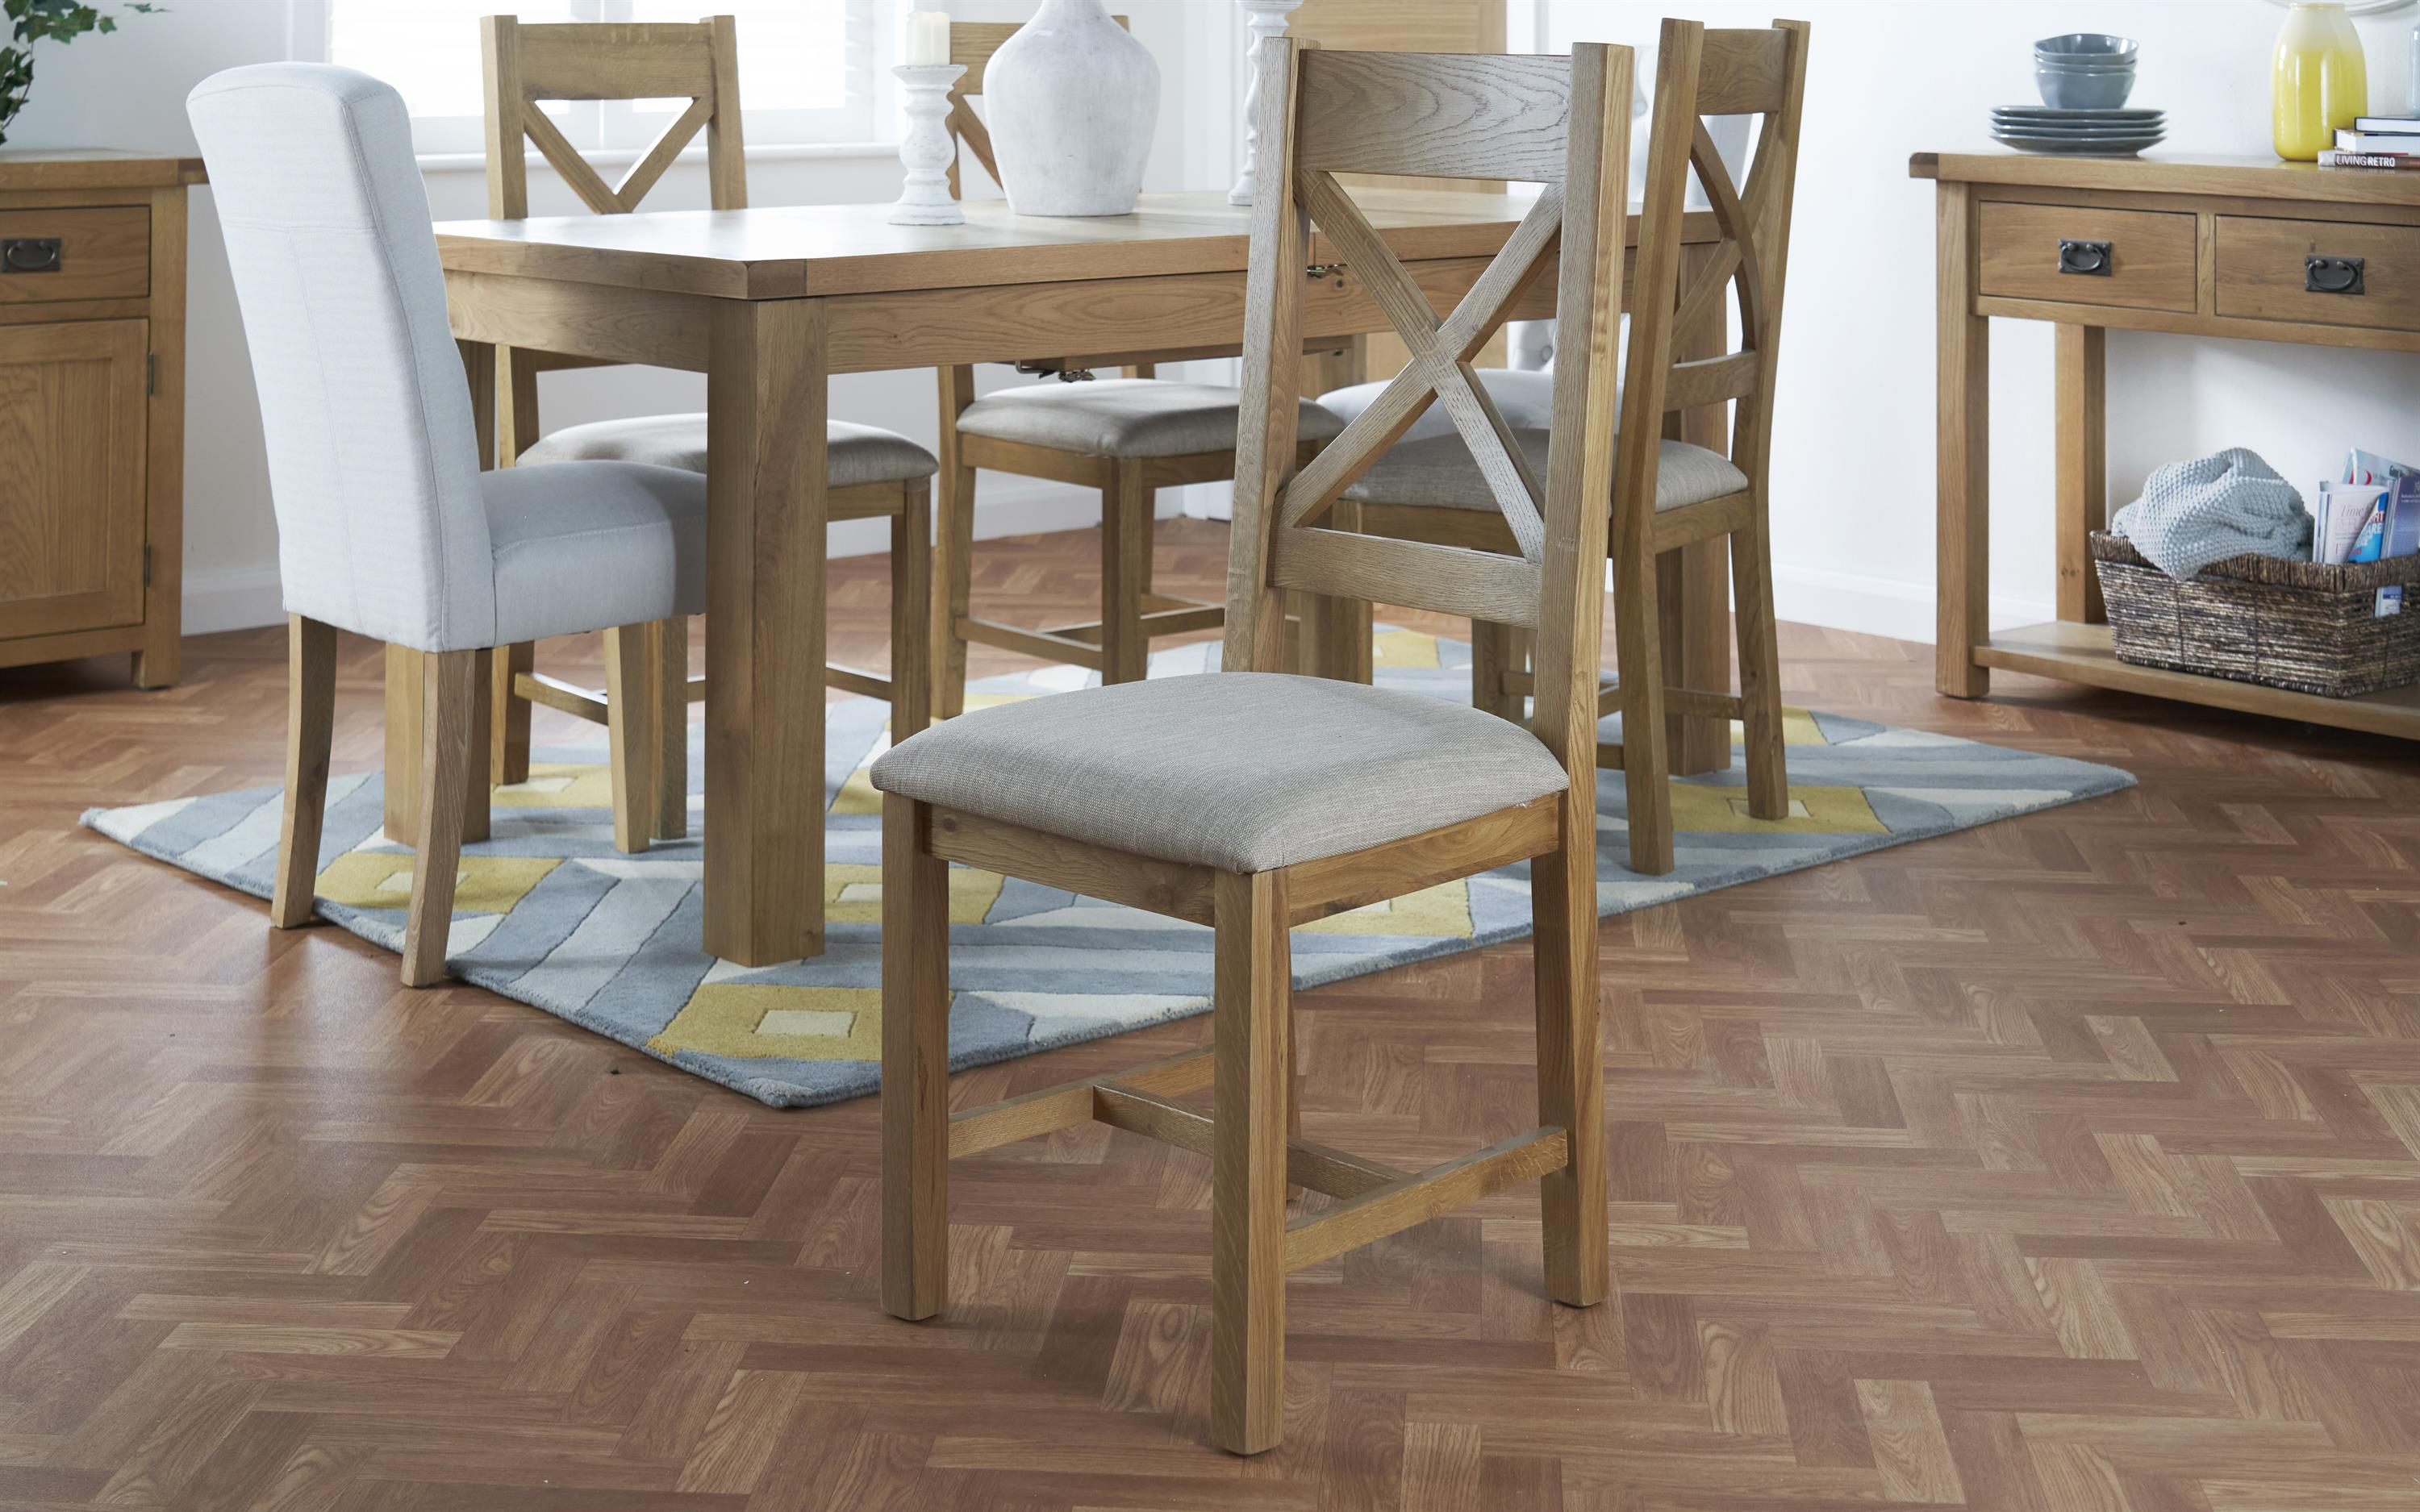 Cruz Pair of Cross Back Dining Chairs